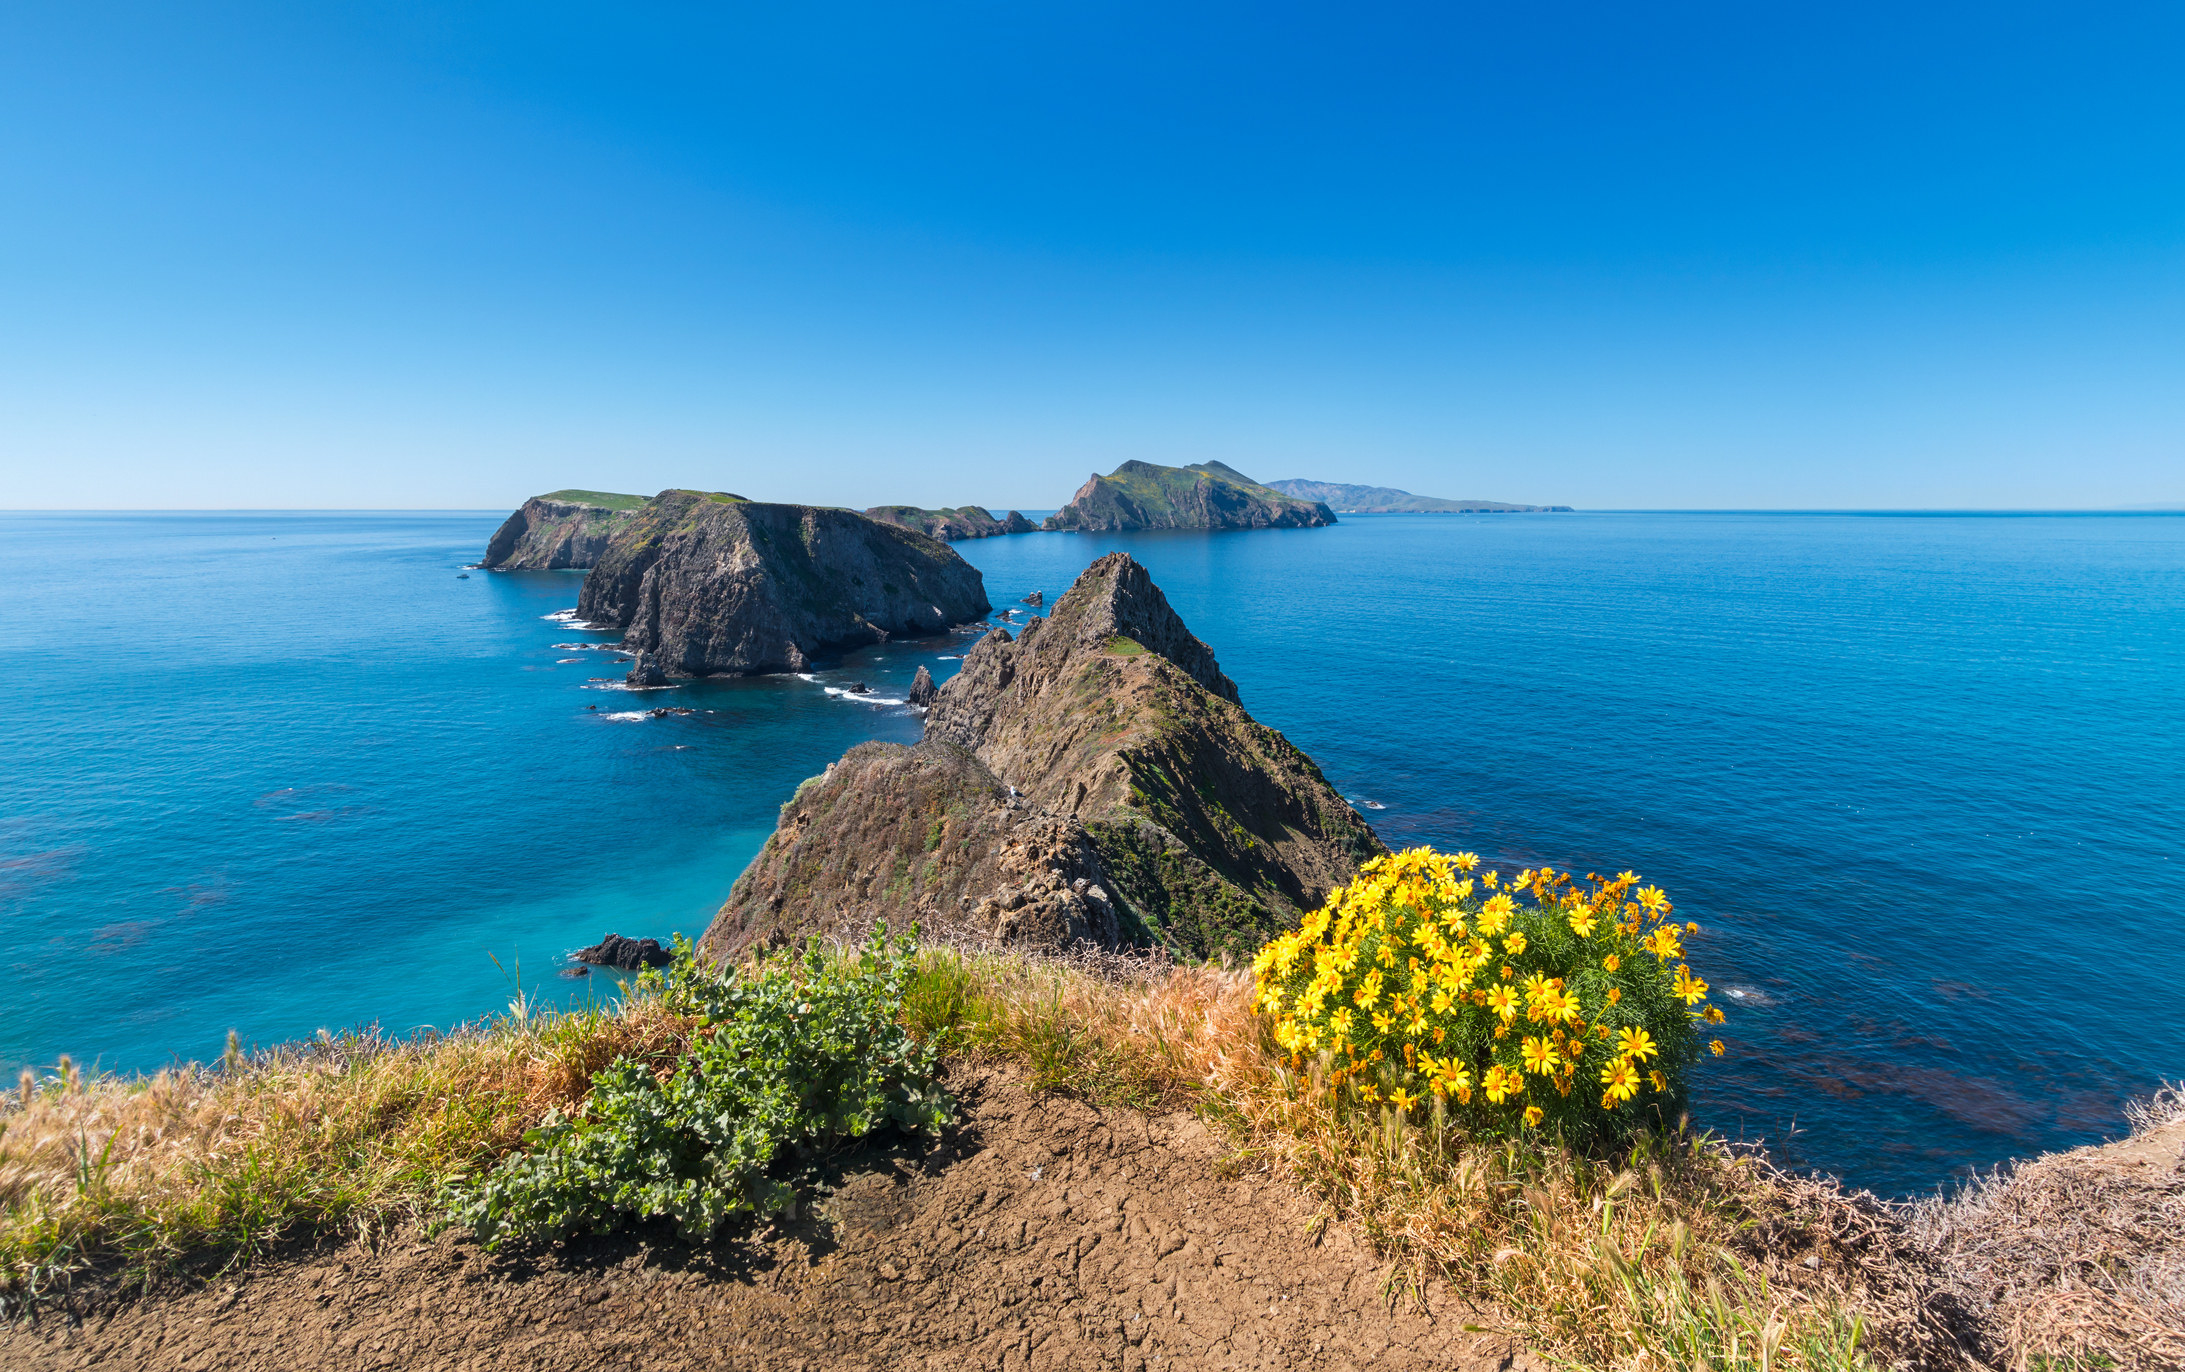 A POV shot overlooking a cliff with rocky islands in the distance, making a chain of islands